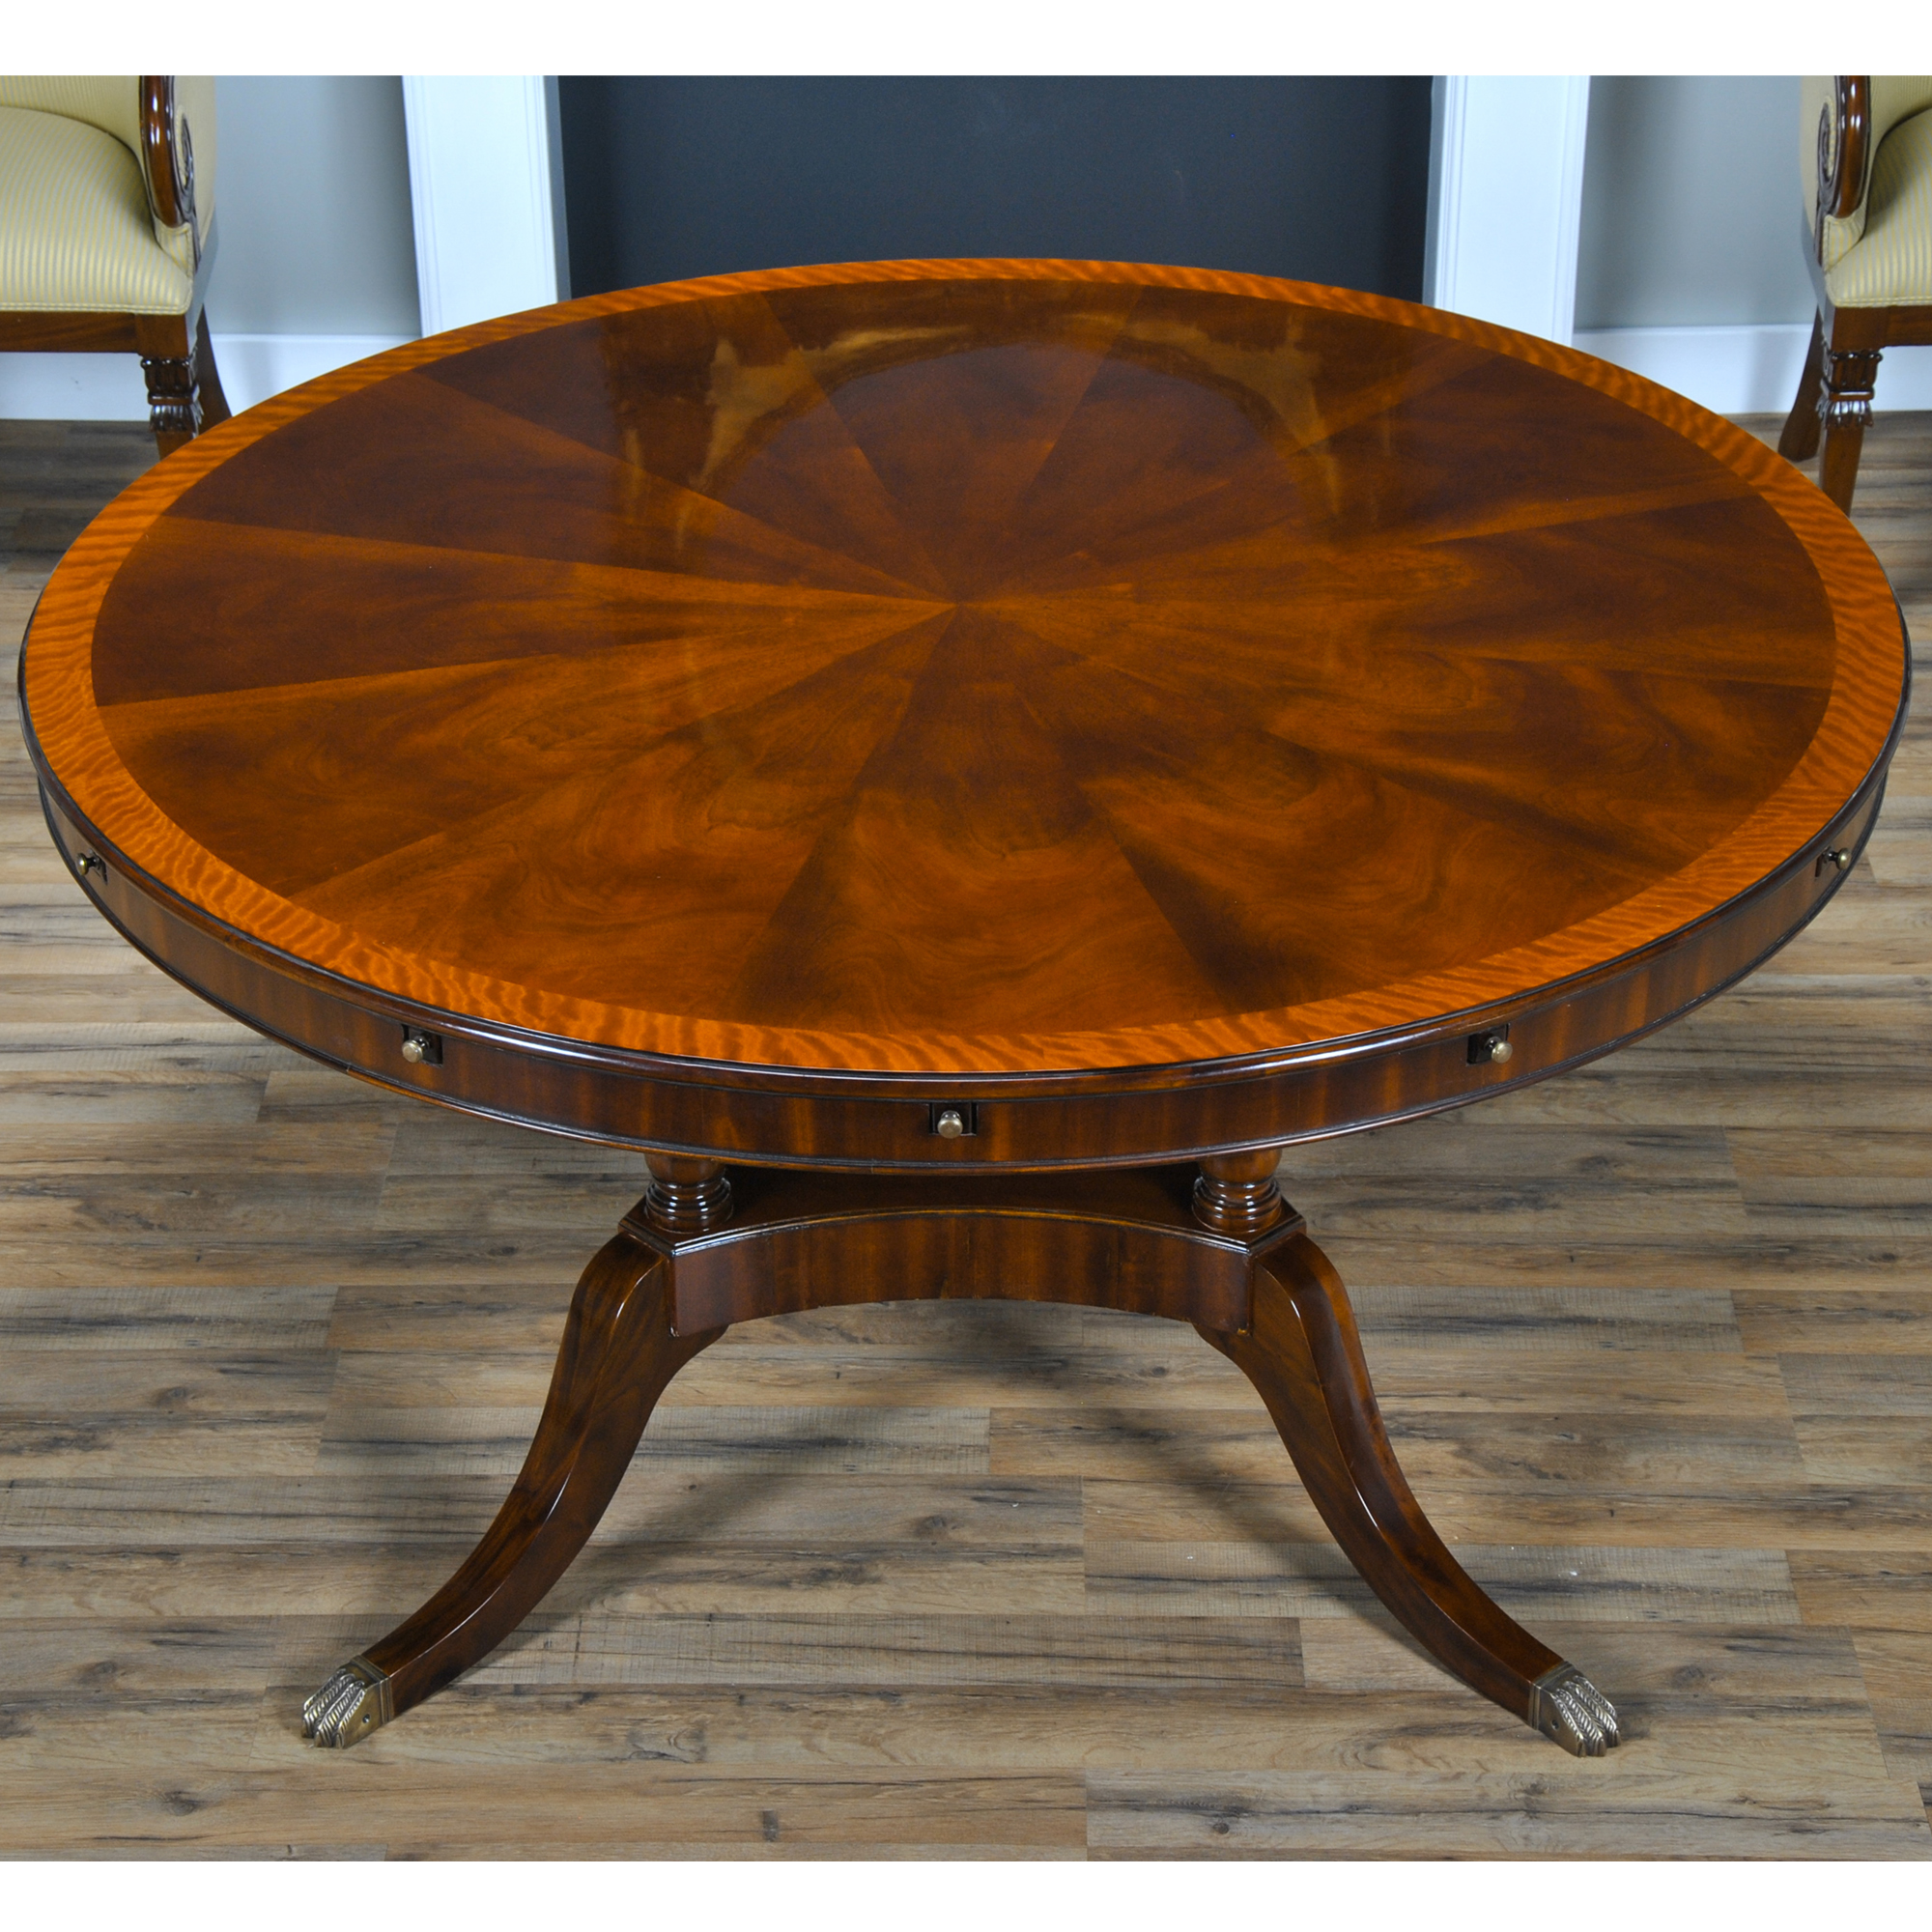 84 Inch Round Perimeter Table Niagara Furniture Round